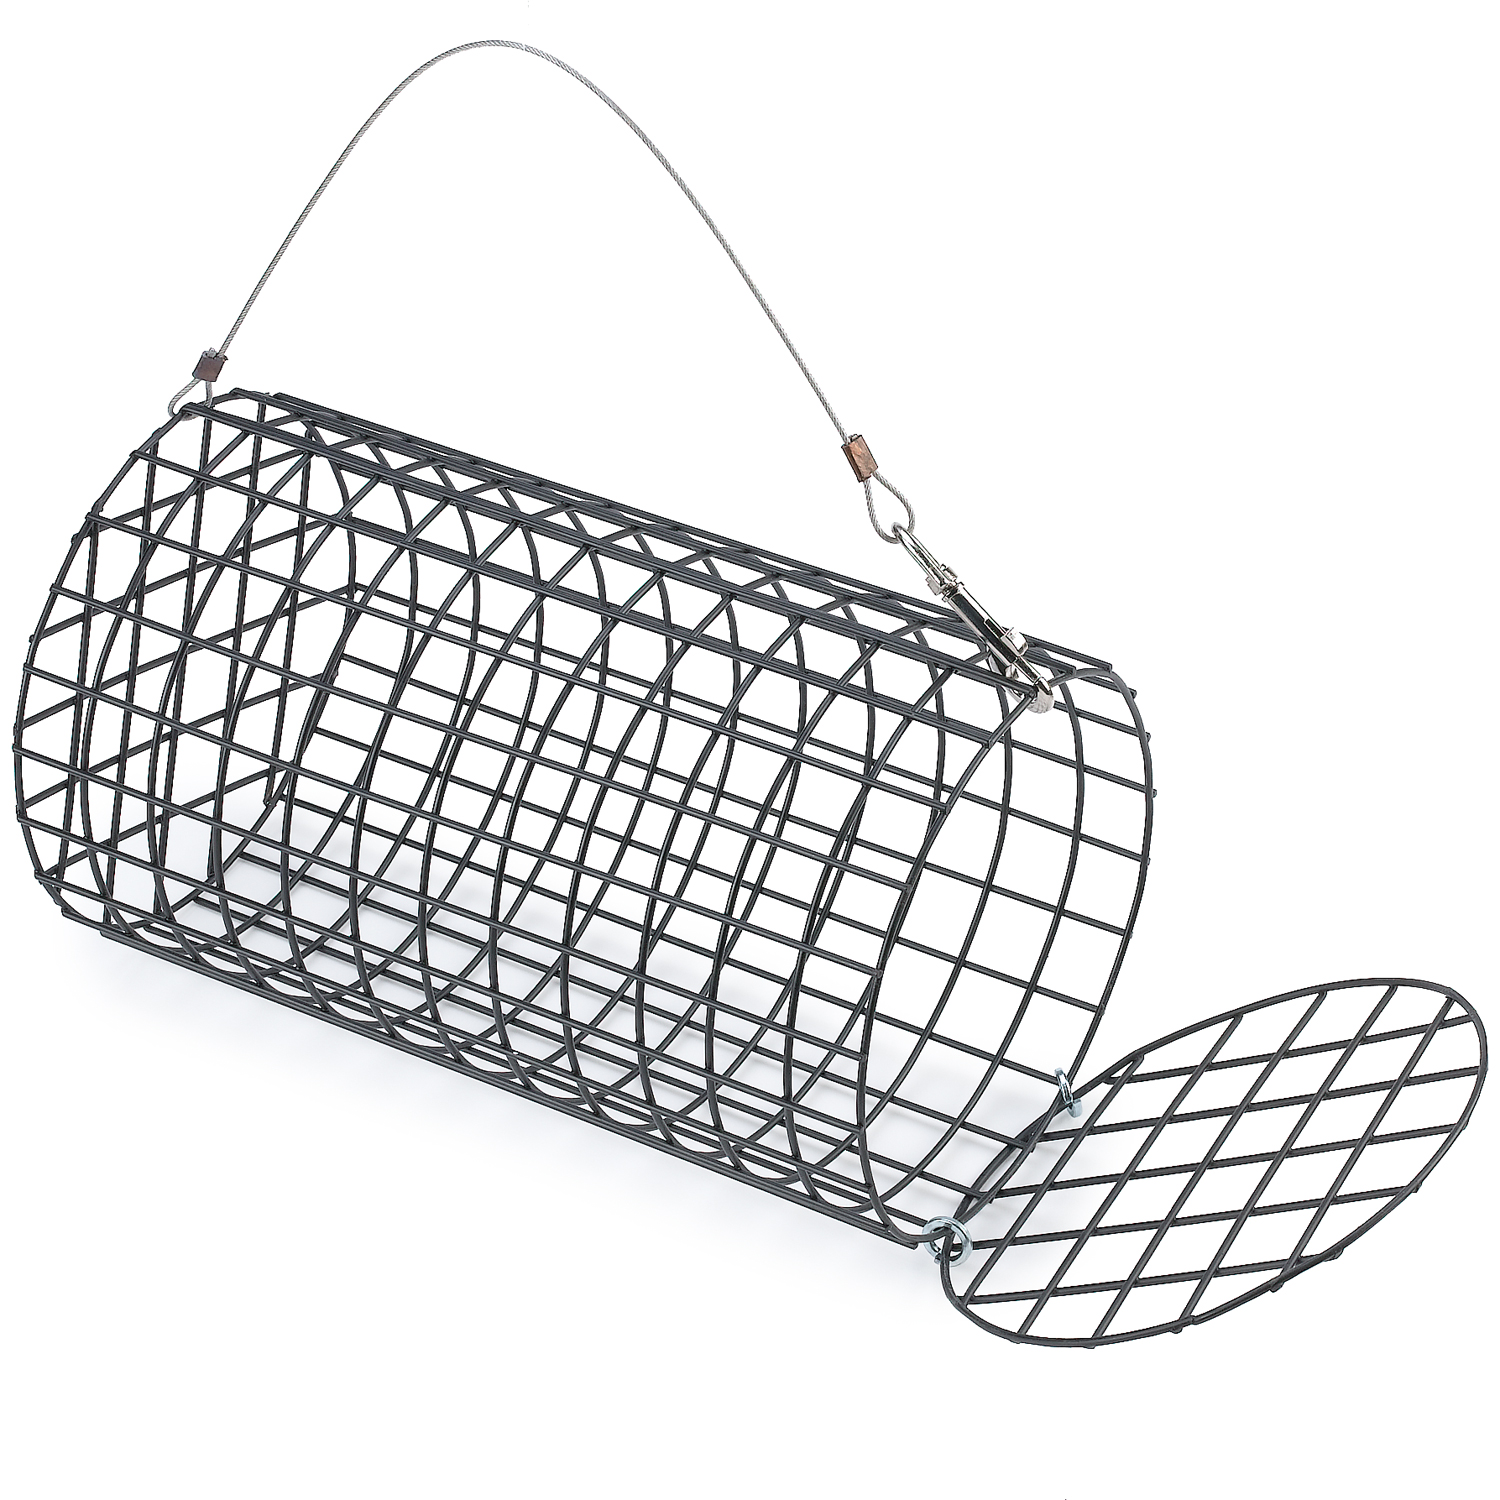 Wildco Artificial Substrate Basket